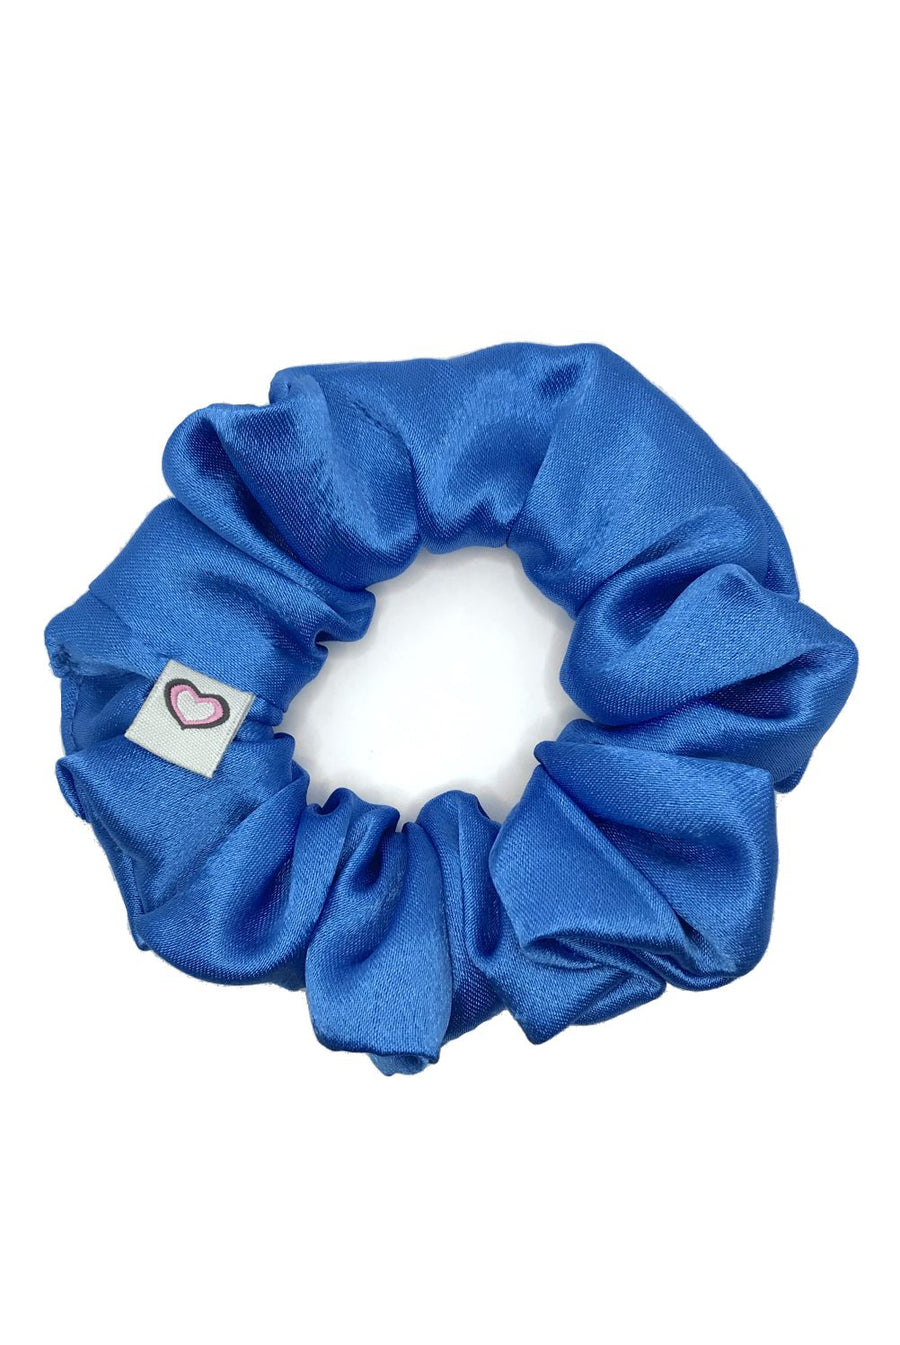 Scrunchies Satin Dreams - 10M